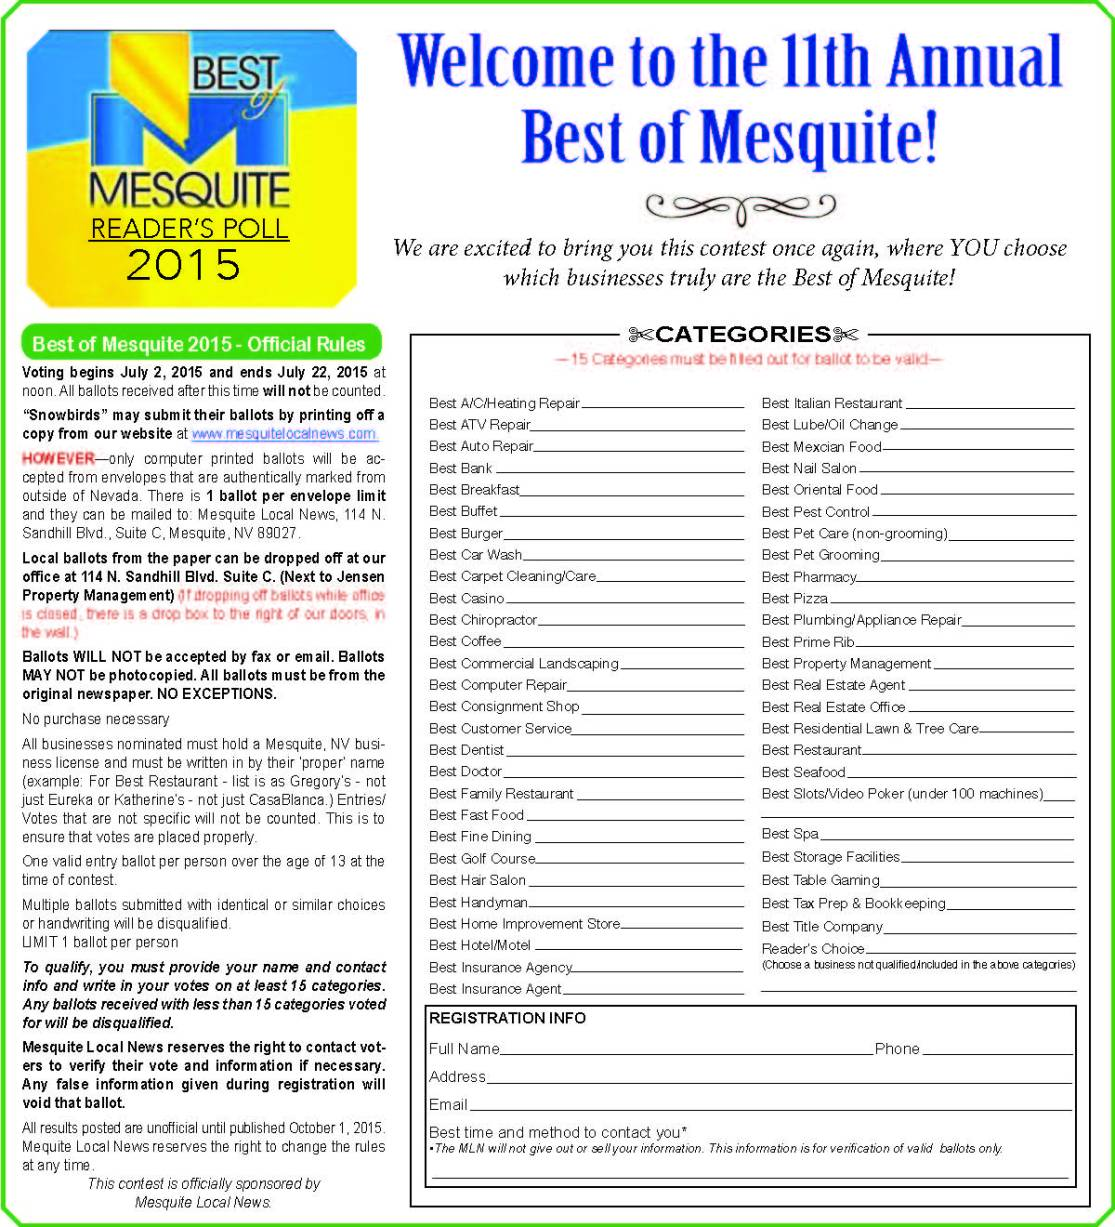 1. Best of Mesquite Rules